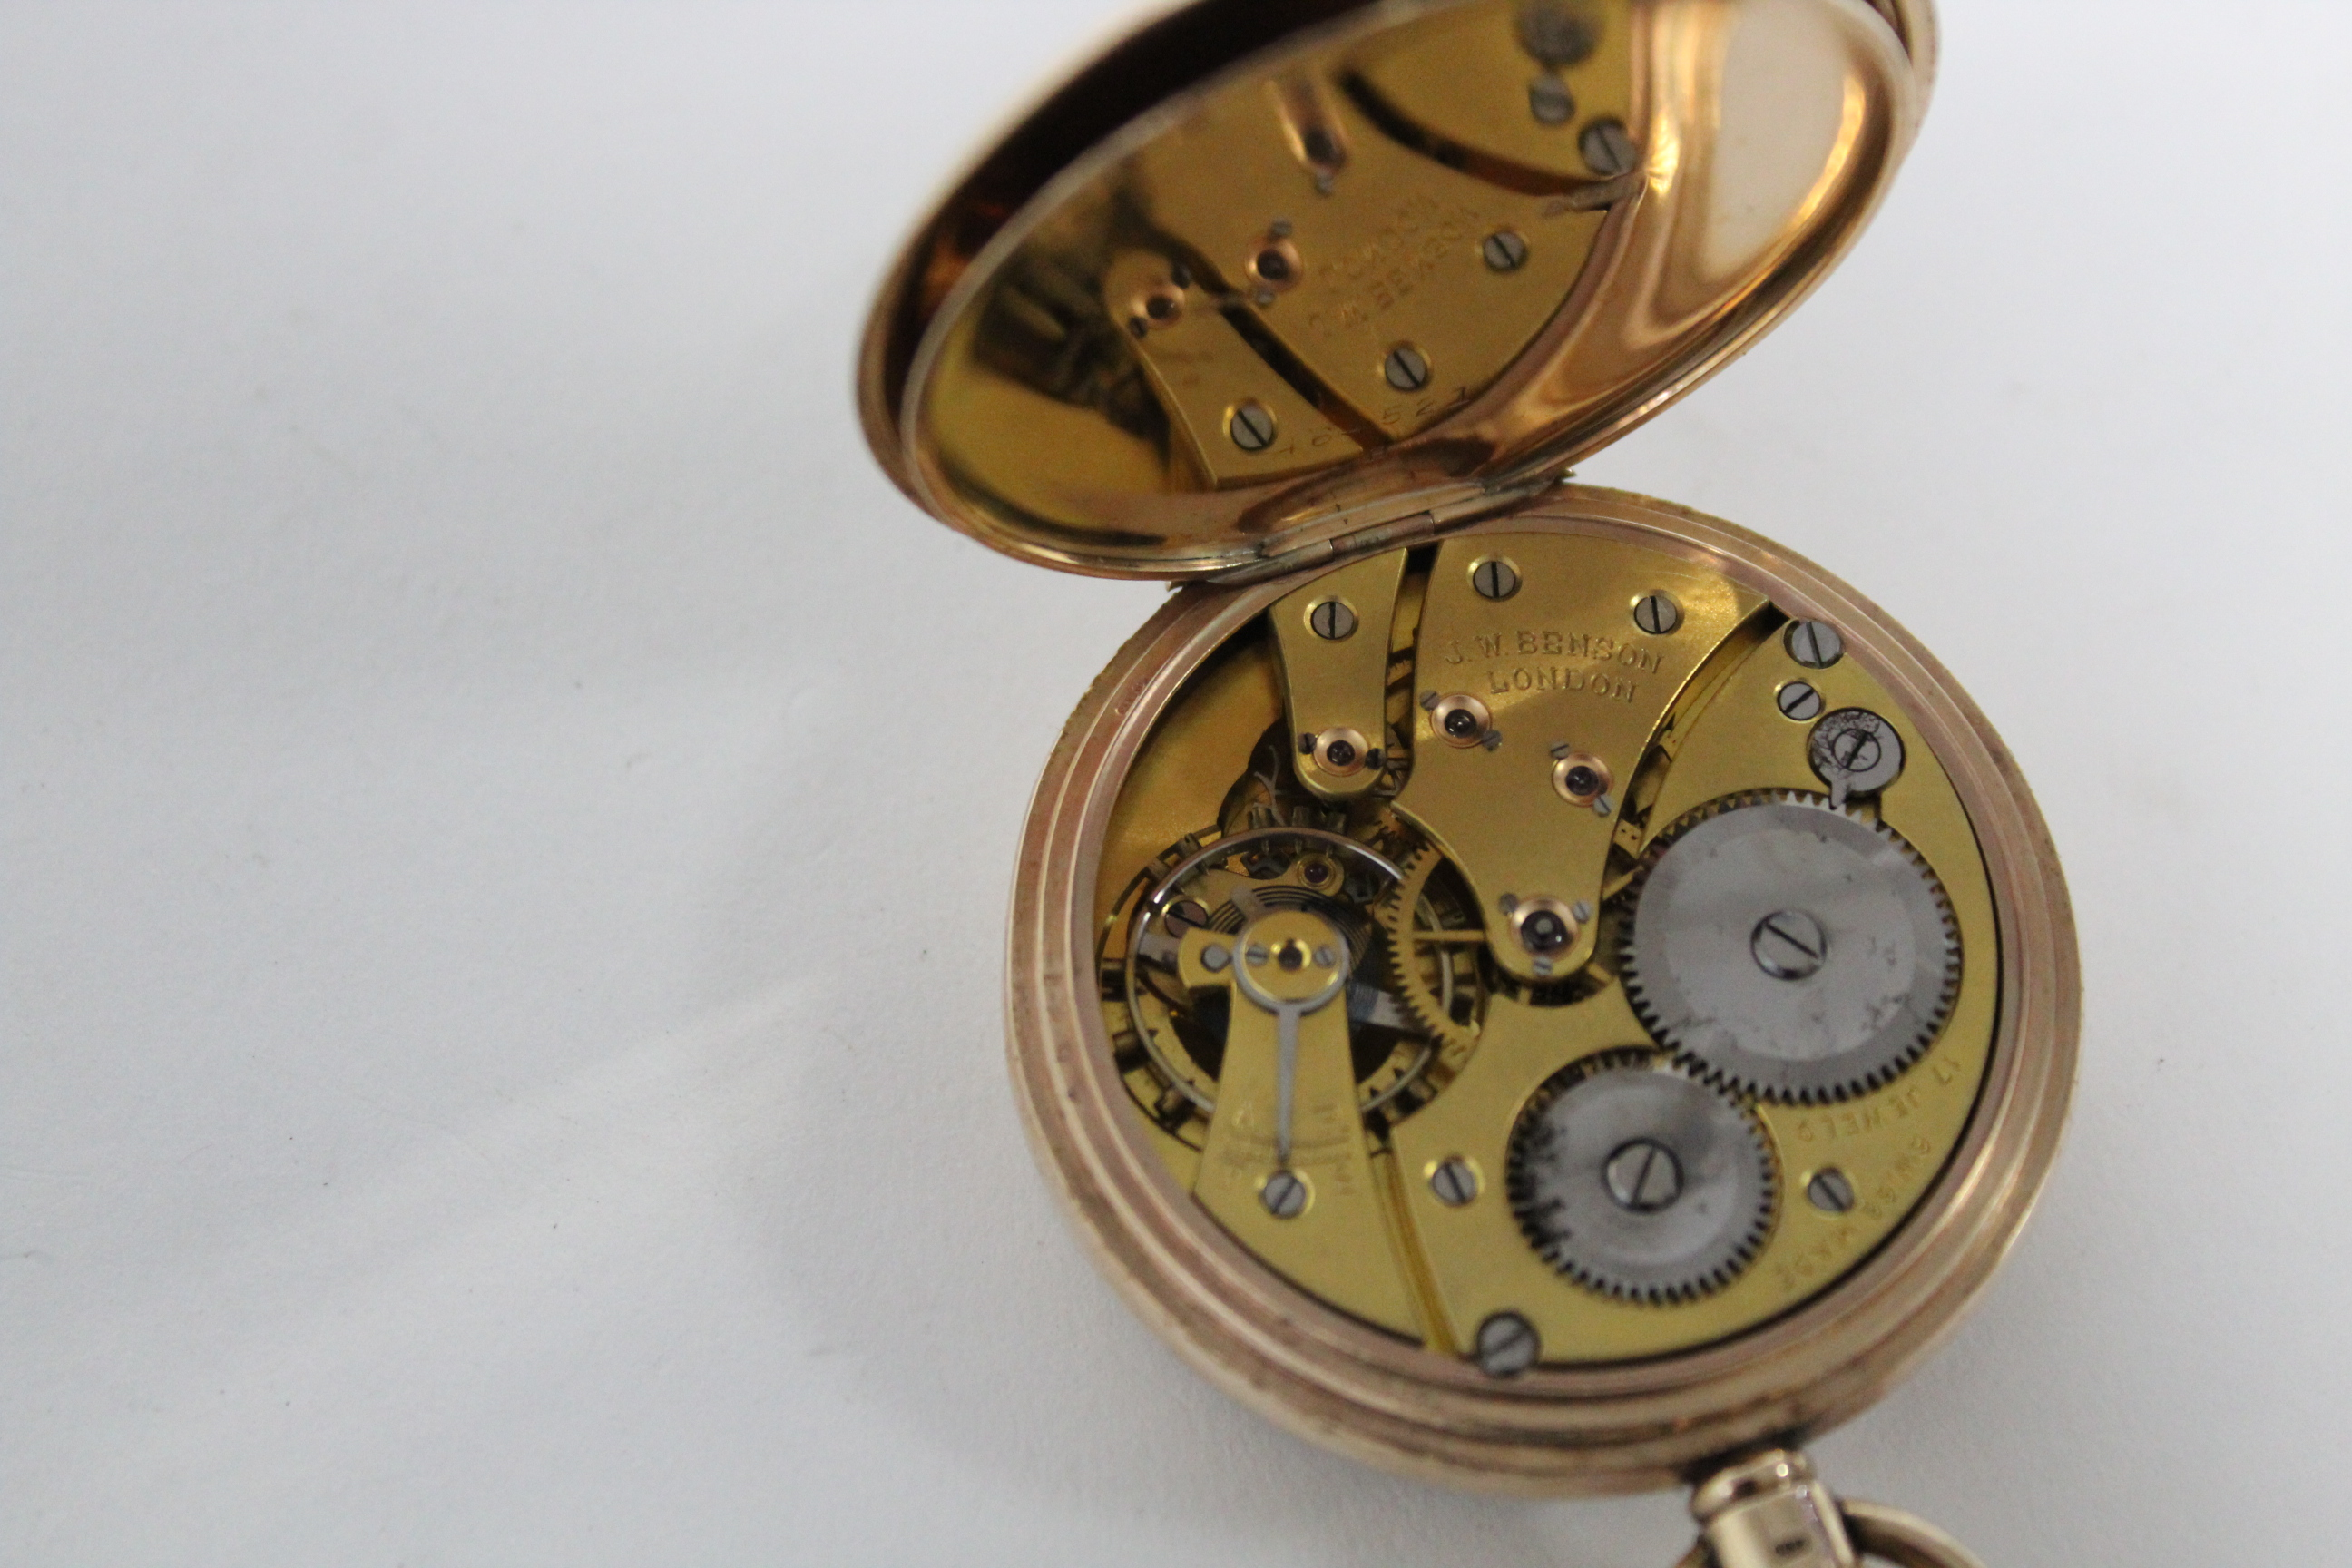 A 9ct. gold cased gent's open-face pocket watch, the white enamel dial with black roman numerals & - Image 6 of 7